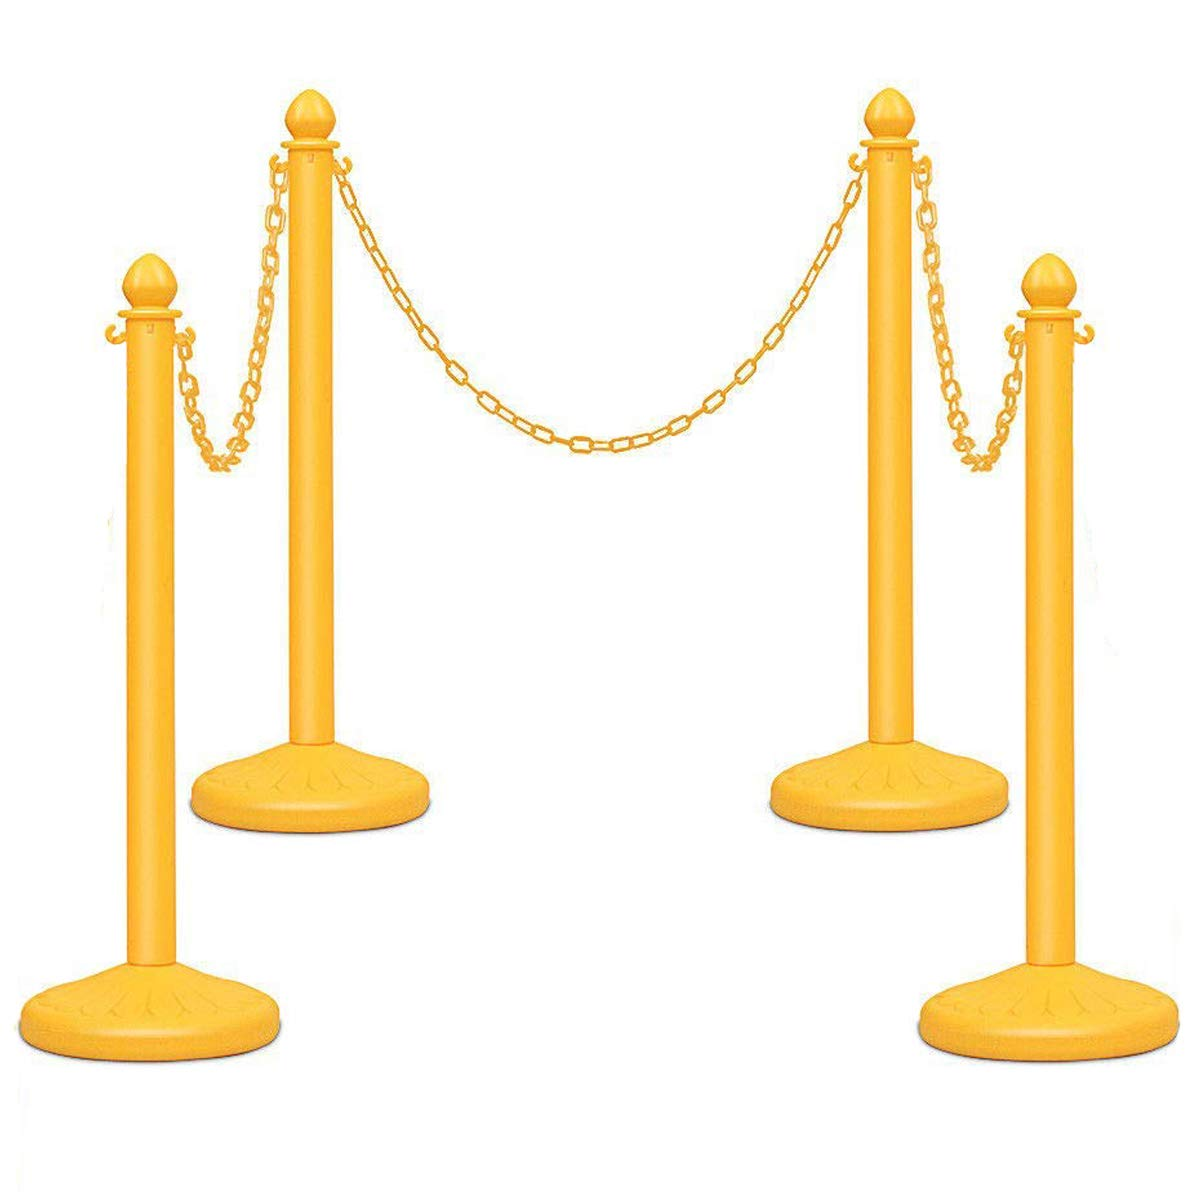 Reliancer 4 Pack Plastic Stanchions set w/3PCS 40'' Link Chain Sentry Stanchion Kit w/ Fillable Base Crowd Control Safety Stanchion Barriers Easy Connect Assembly Outdoor and Indoor Posts Queue Barrier